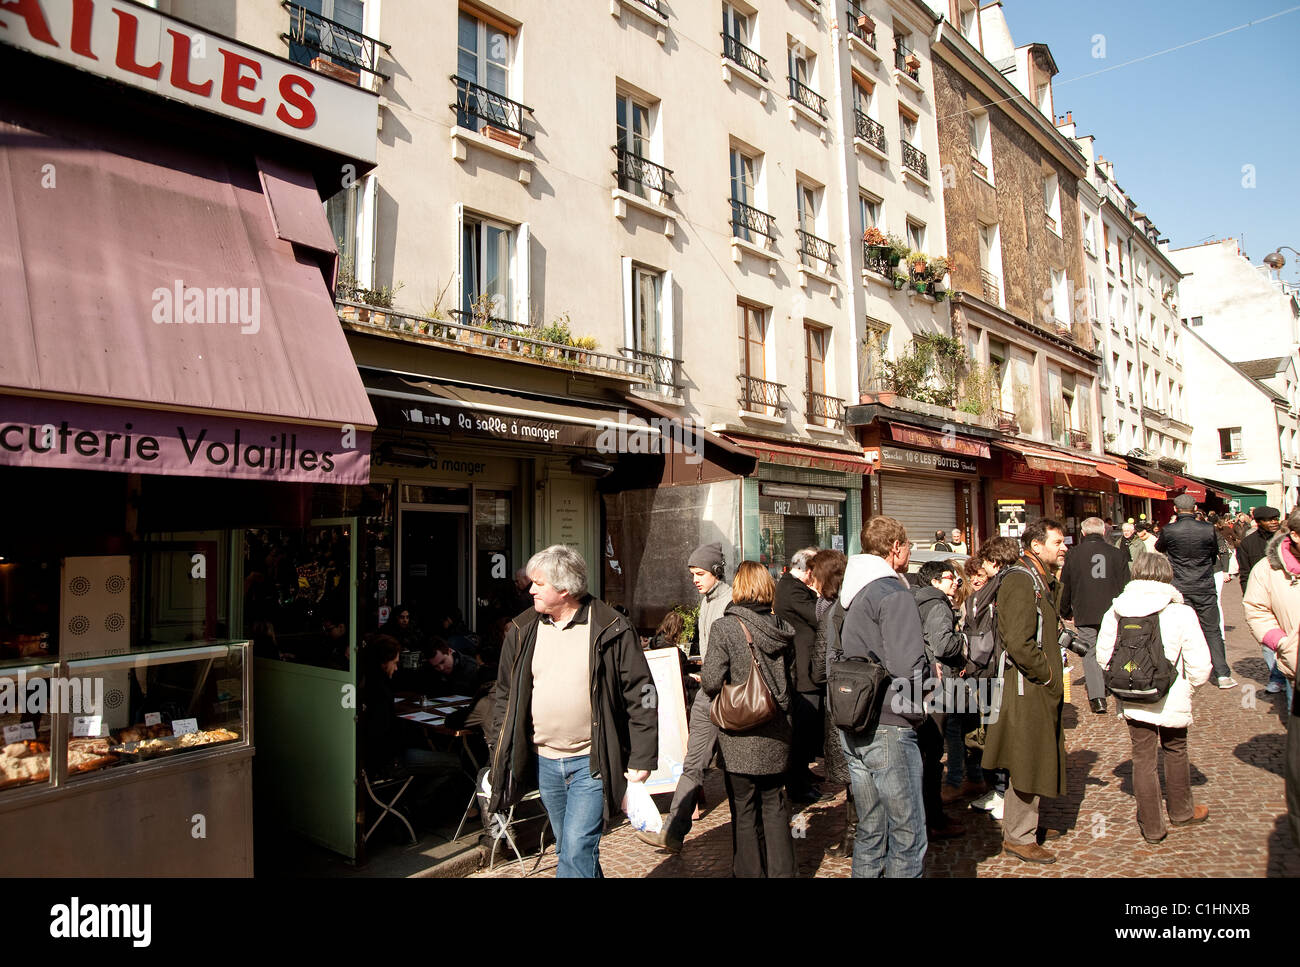 Rue Mouffetard Paris Stock Photos & Rue Mouffetard Paris Stock ...